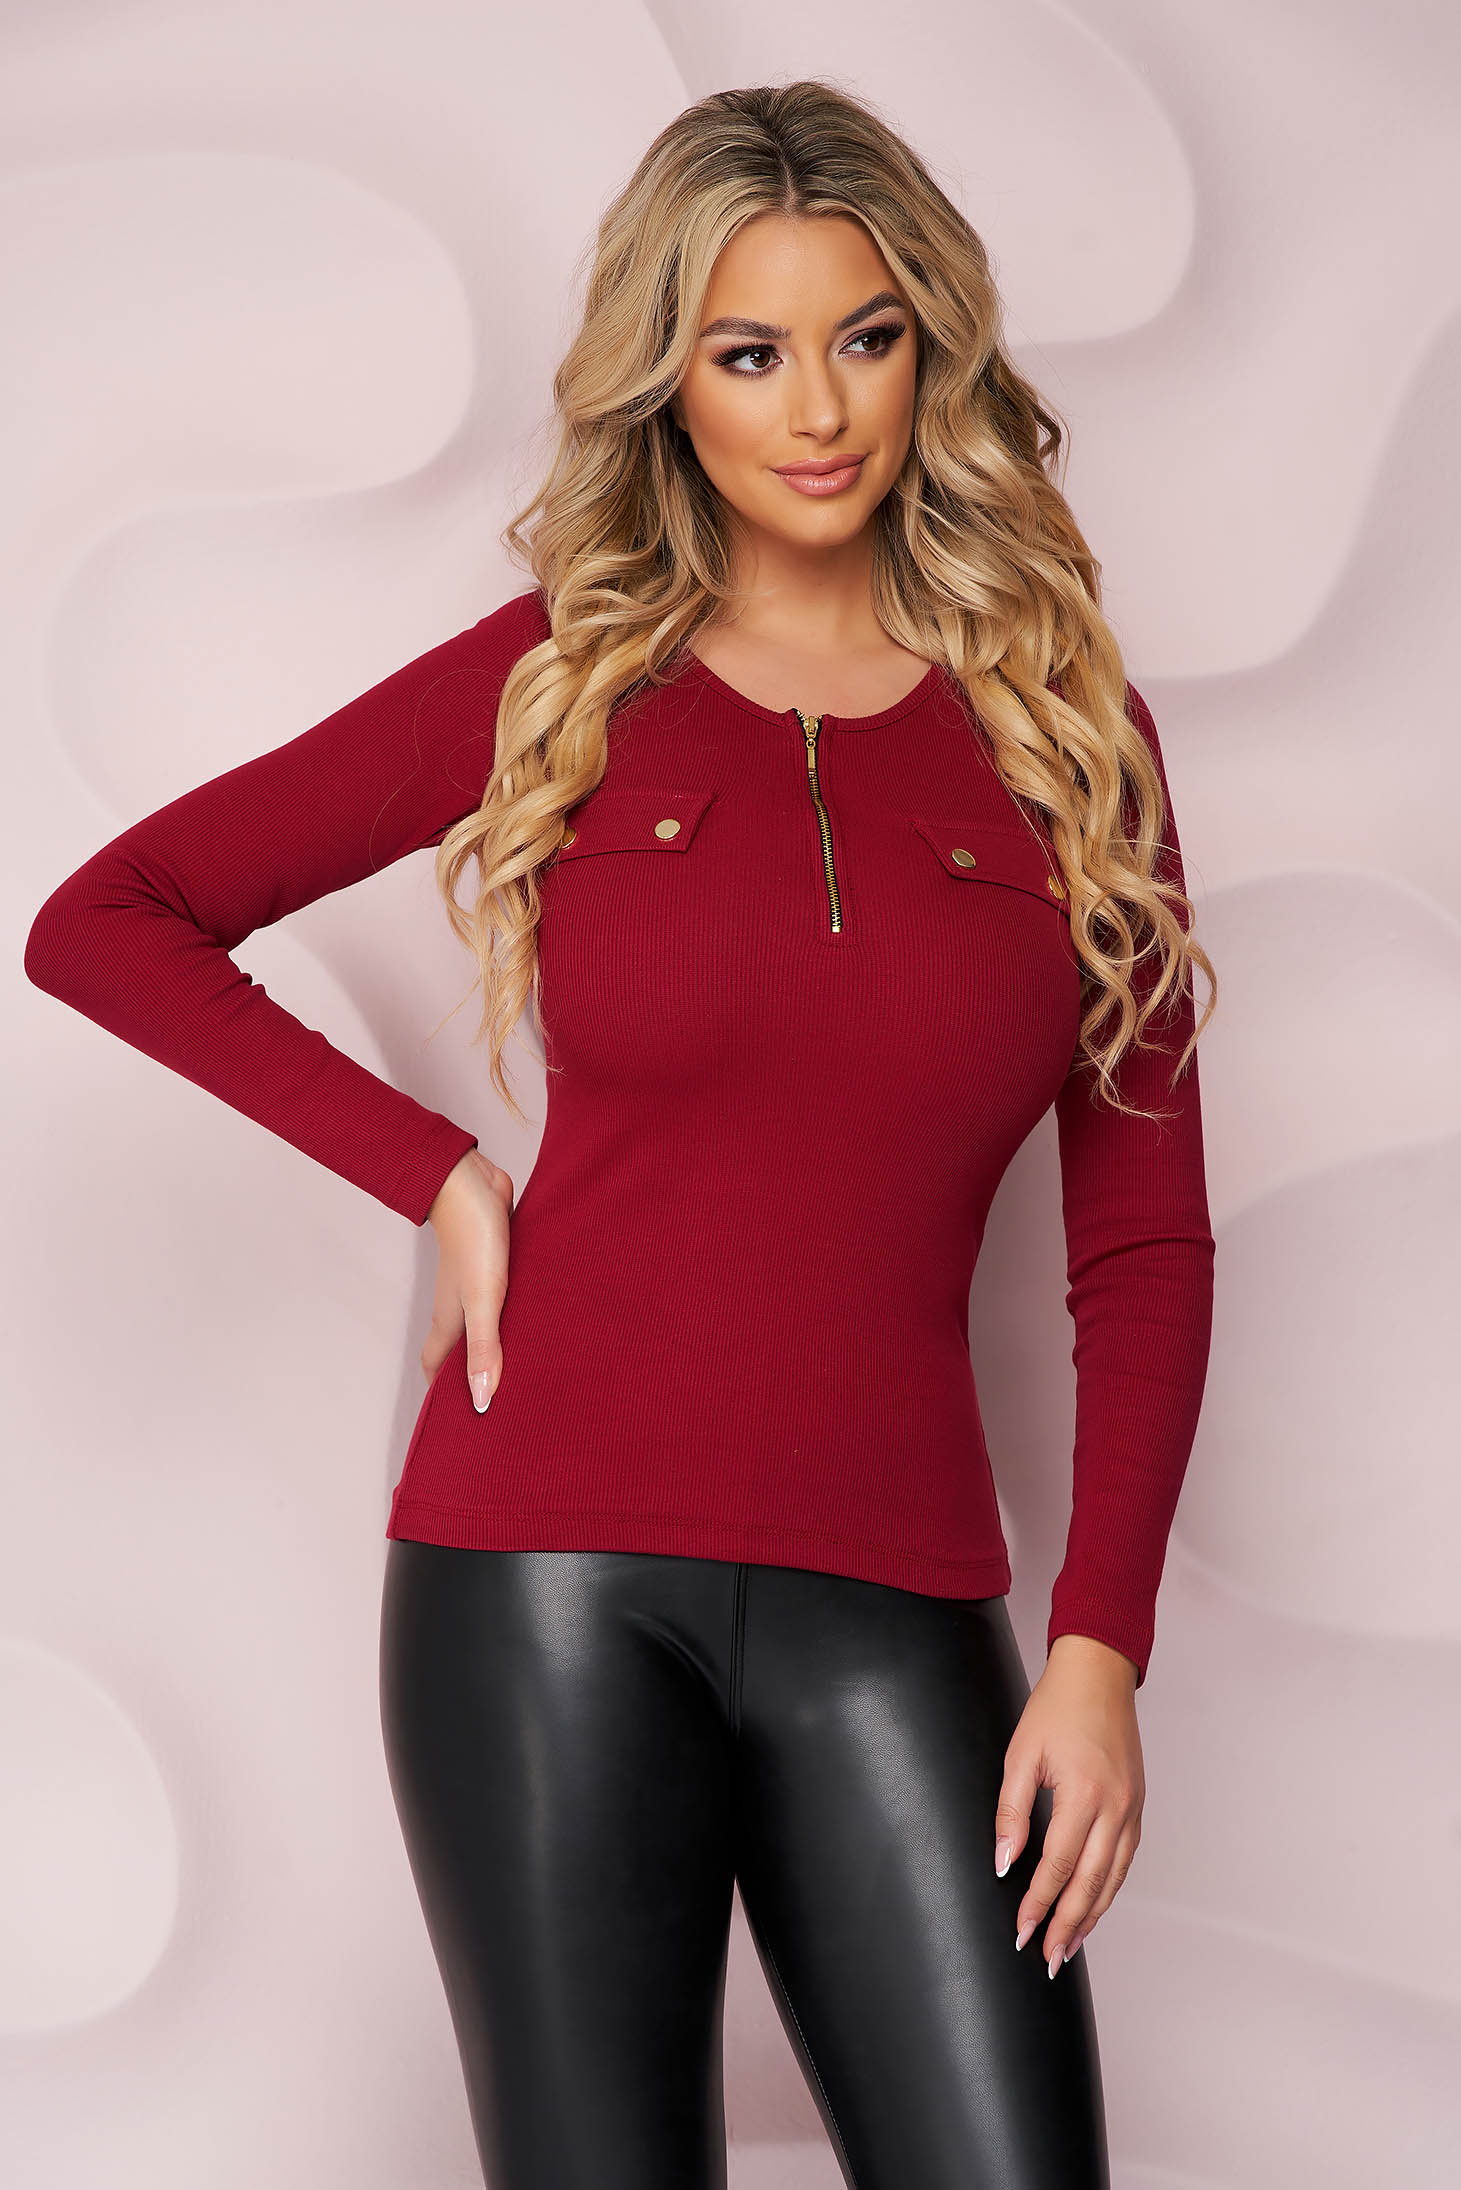 Burgundy women`s blouse cotton from striped fabric tented zipper closure blouse closure with gold buttons